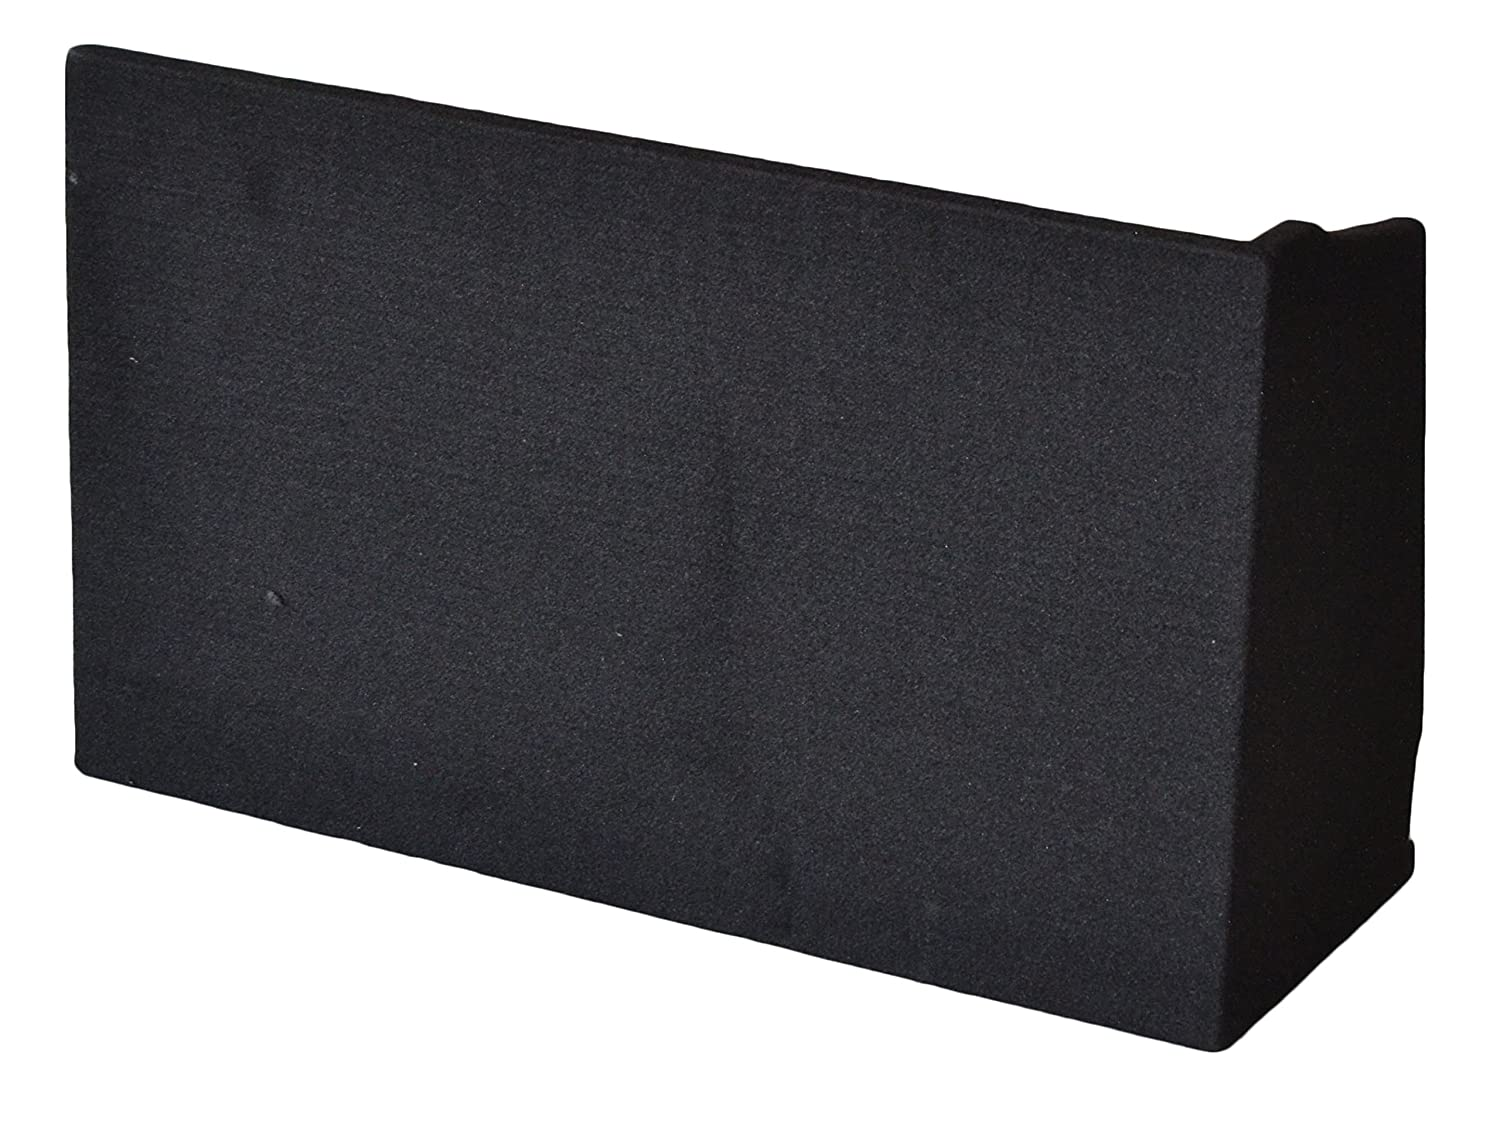 SoundBox LCE-GC016//12D CARB COMPLIANT MDF DONT BUY CHEAPER NON COMPLIANT MDF Chevy Silverado // GMC Sierra Ext Extended Cab Single 12 Subwoofer Enclosure Sub Box 1999-2006